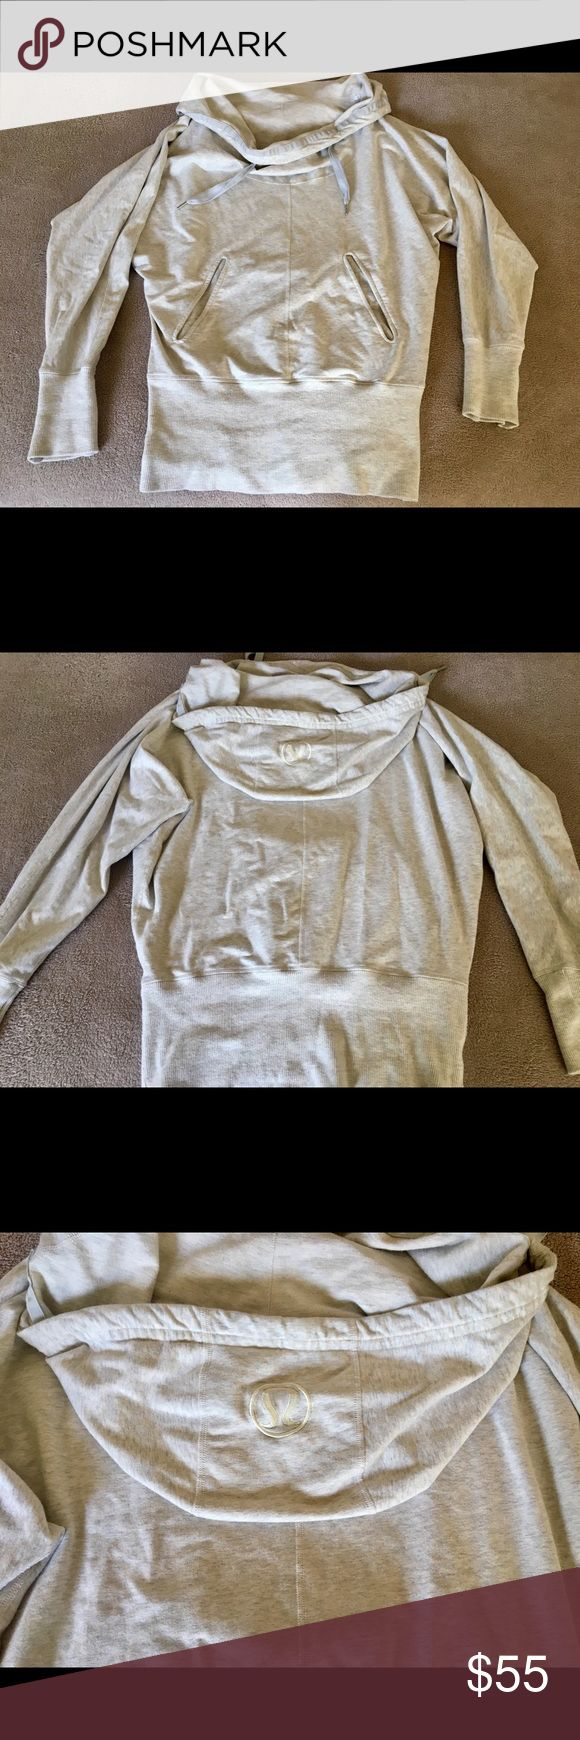 Lululemon Flash Back Pullover Hoodie Cream 10 Worn a few times, in excellent condition.  Oatmeal (cream) color.  The black color on model are stock photos for reference on fit. lululemon athletica Tops Sweatshirts & Hoodies